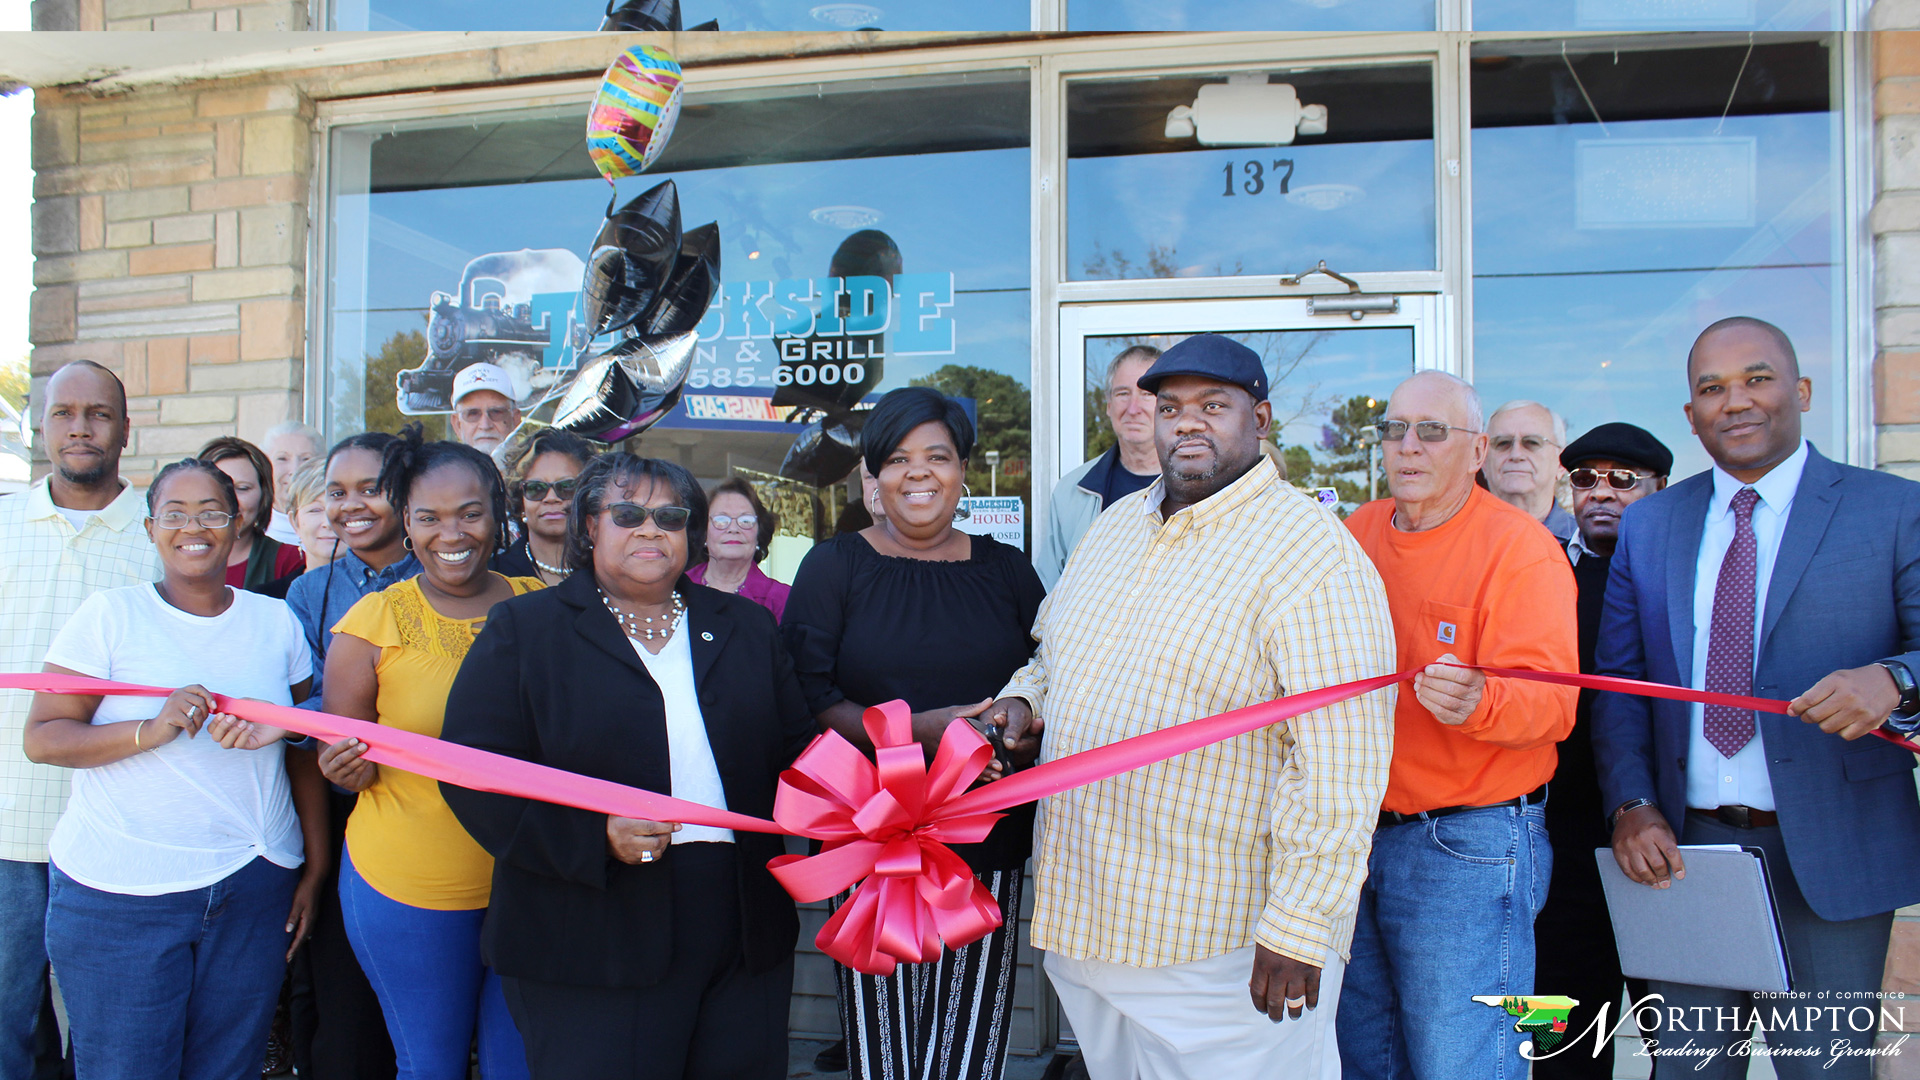 Track-Side Restaurant Conway Ribbon Cutting took place on November 4, 2019